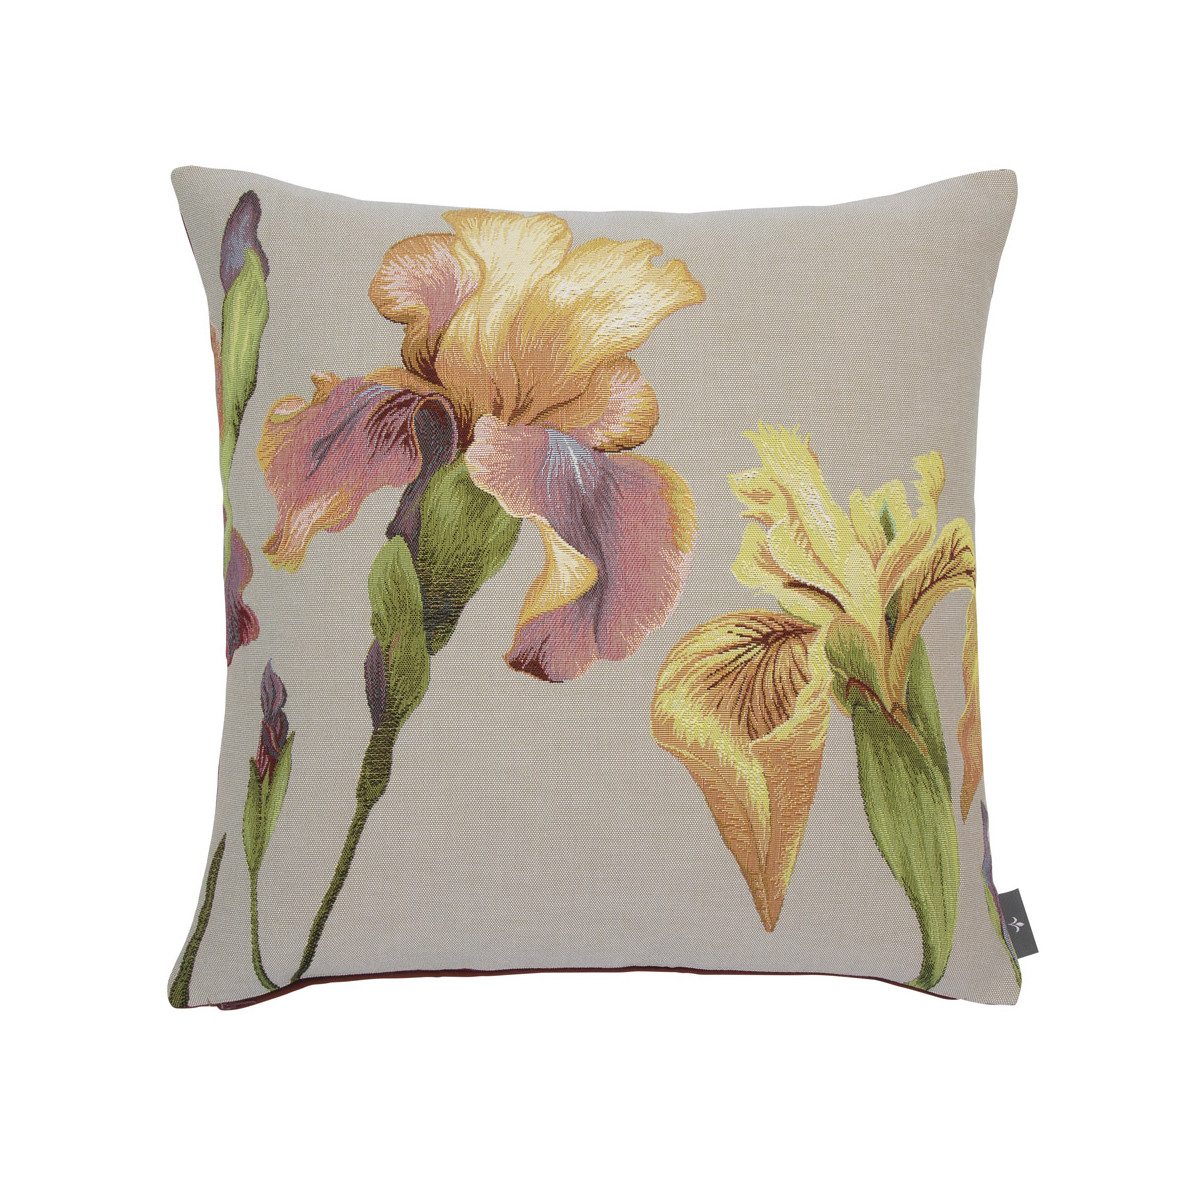 Coussin tapisserie giverny iris made in france gris   50x50